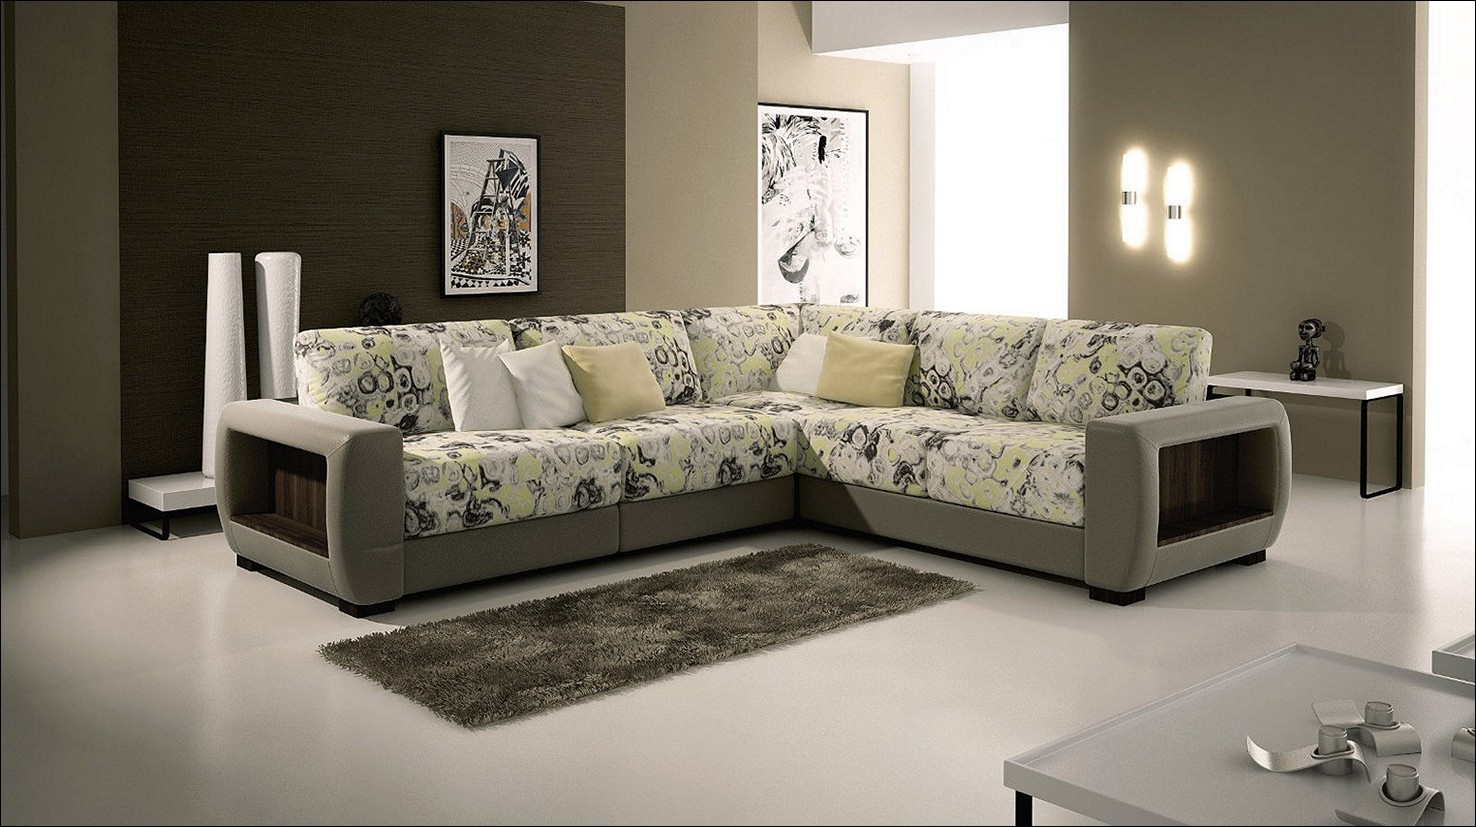 livingroom wallpaper wallpapers for living room design ideas in uk 4519